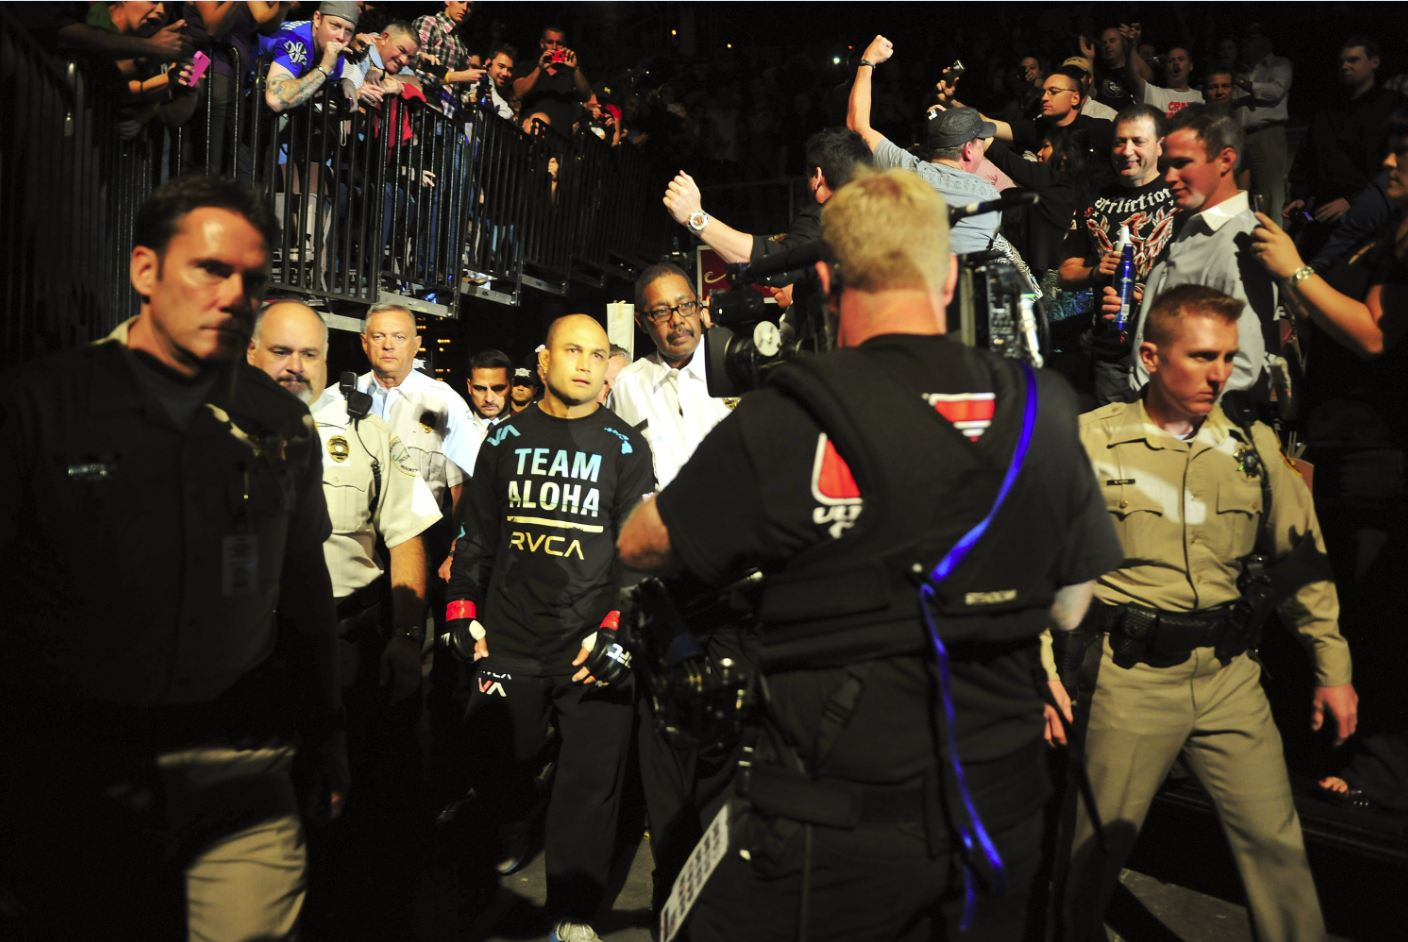 ... and at UFC 137 in 2011